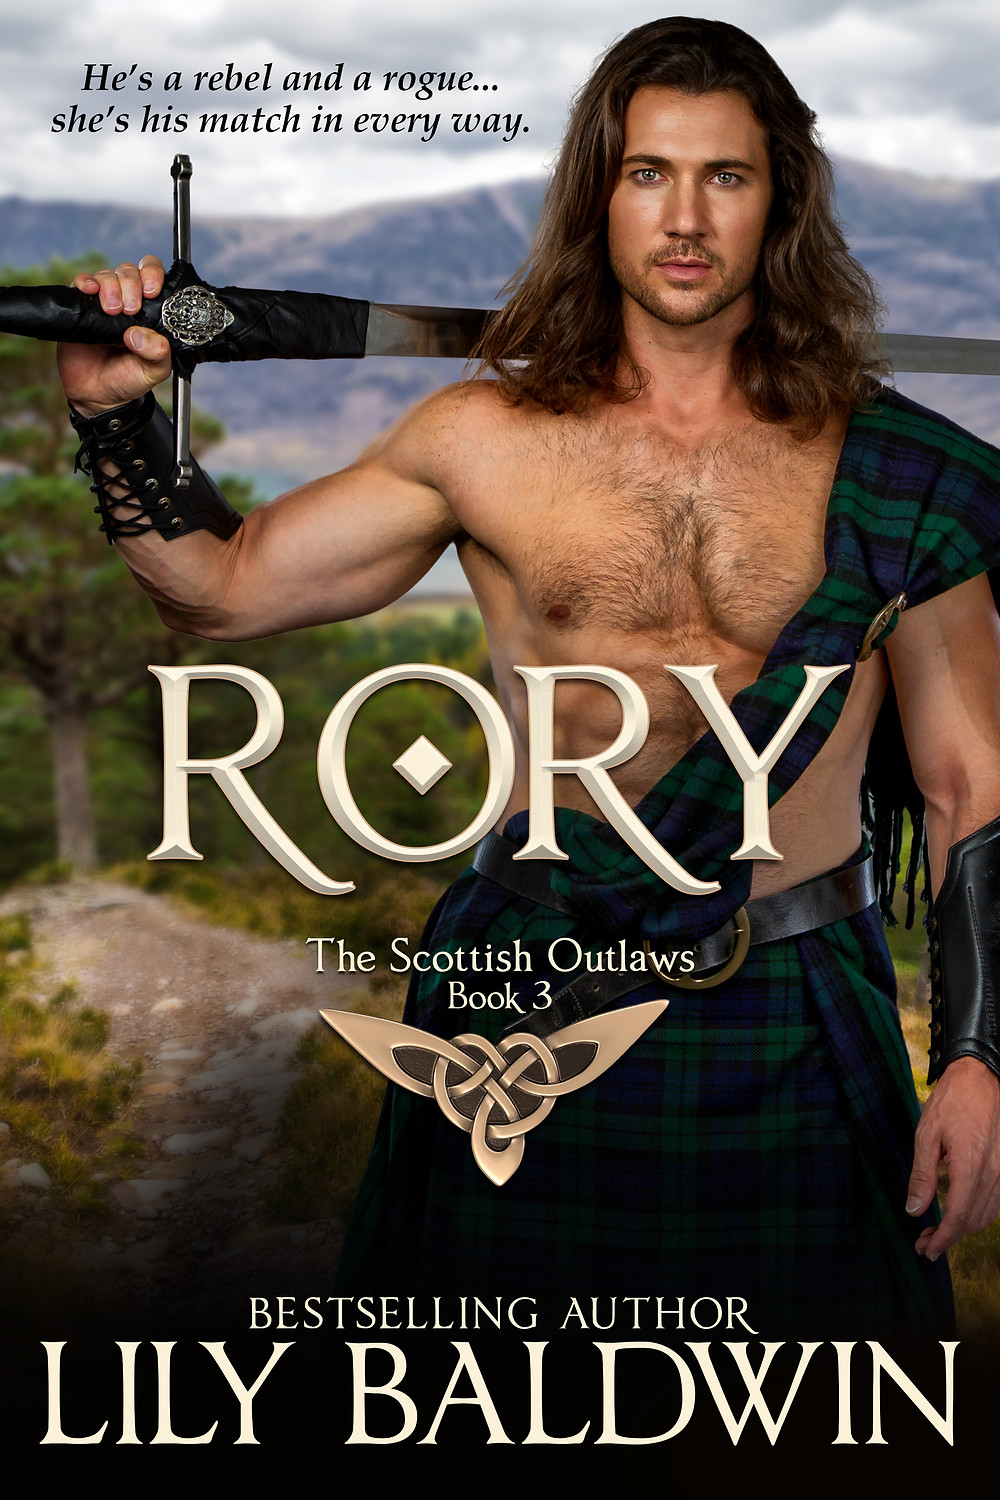 Rory: The Scottish Outlaws by Lily Baldwin